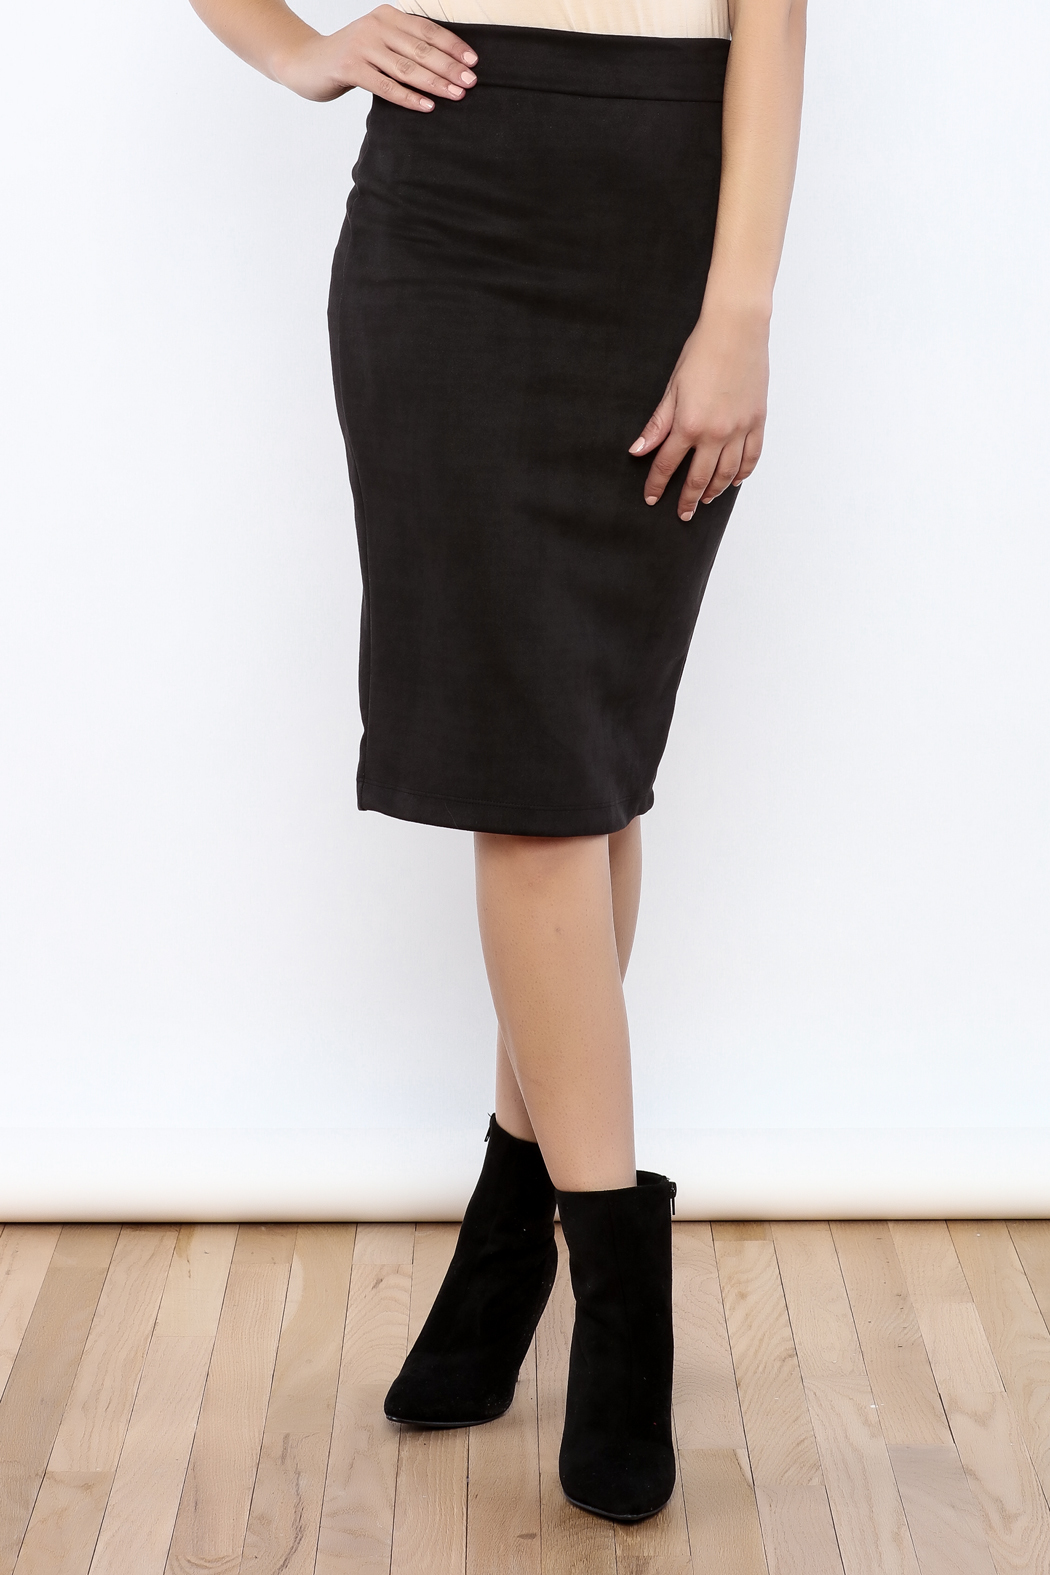 Renee C Black Suede Skirt from Pennsylvania by Bronze Body ...